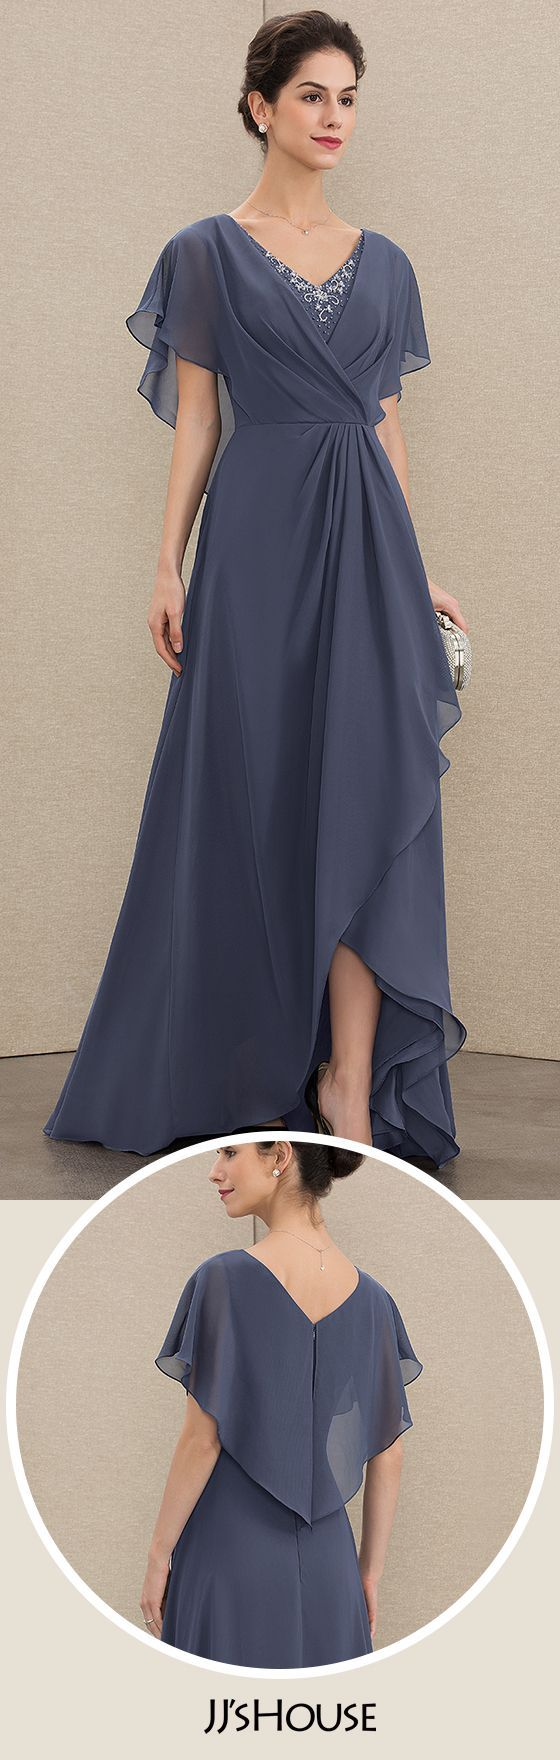 JJsHouse A-Line V-neck Asymmetrical Chiffon Mother of the Bride Dress With Beading Sequins